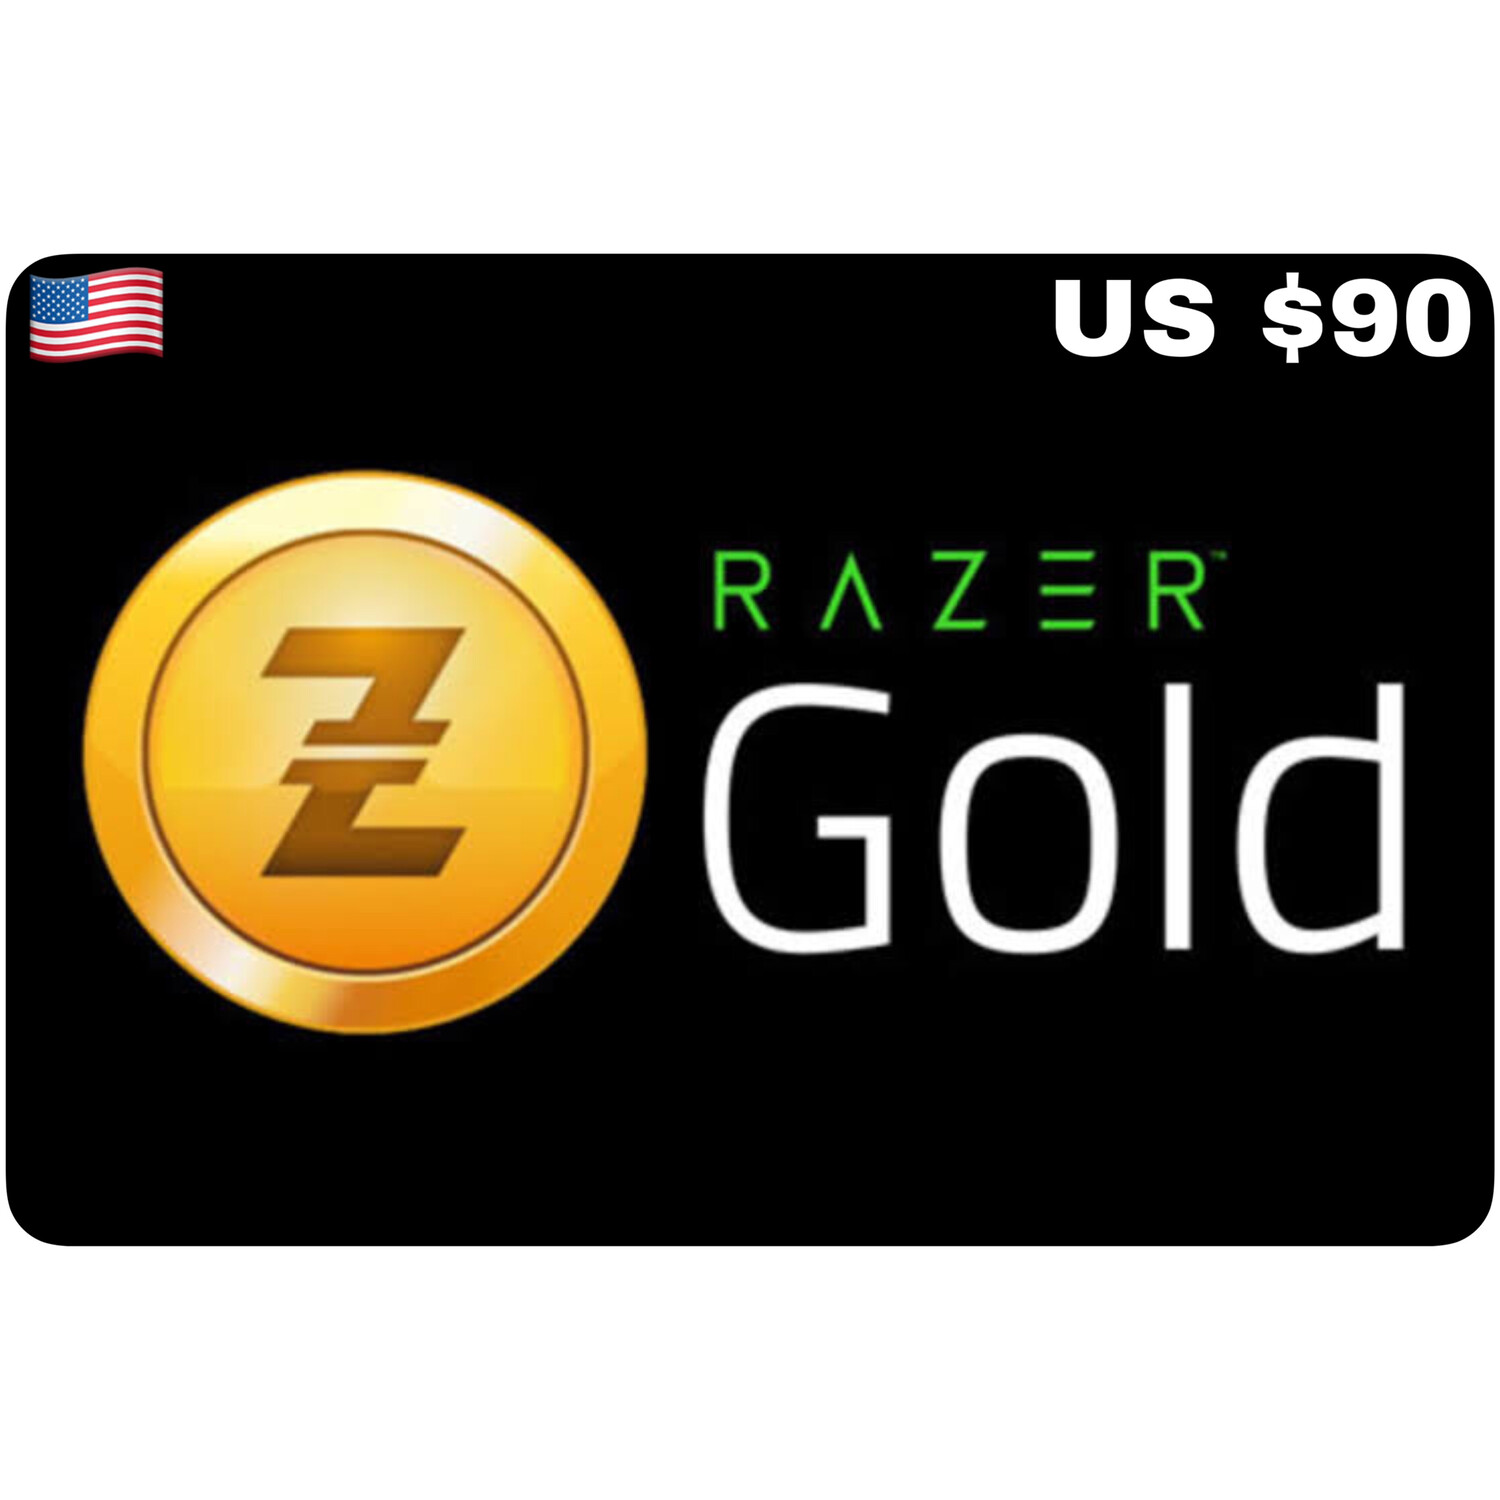 Razer Gold Pin US $90